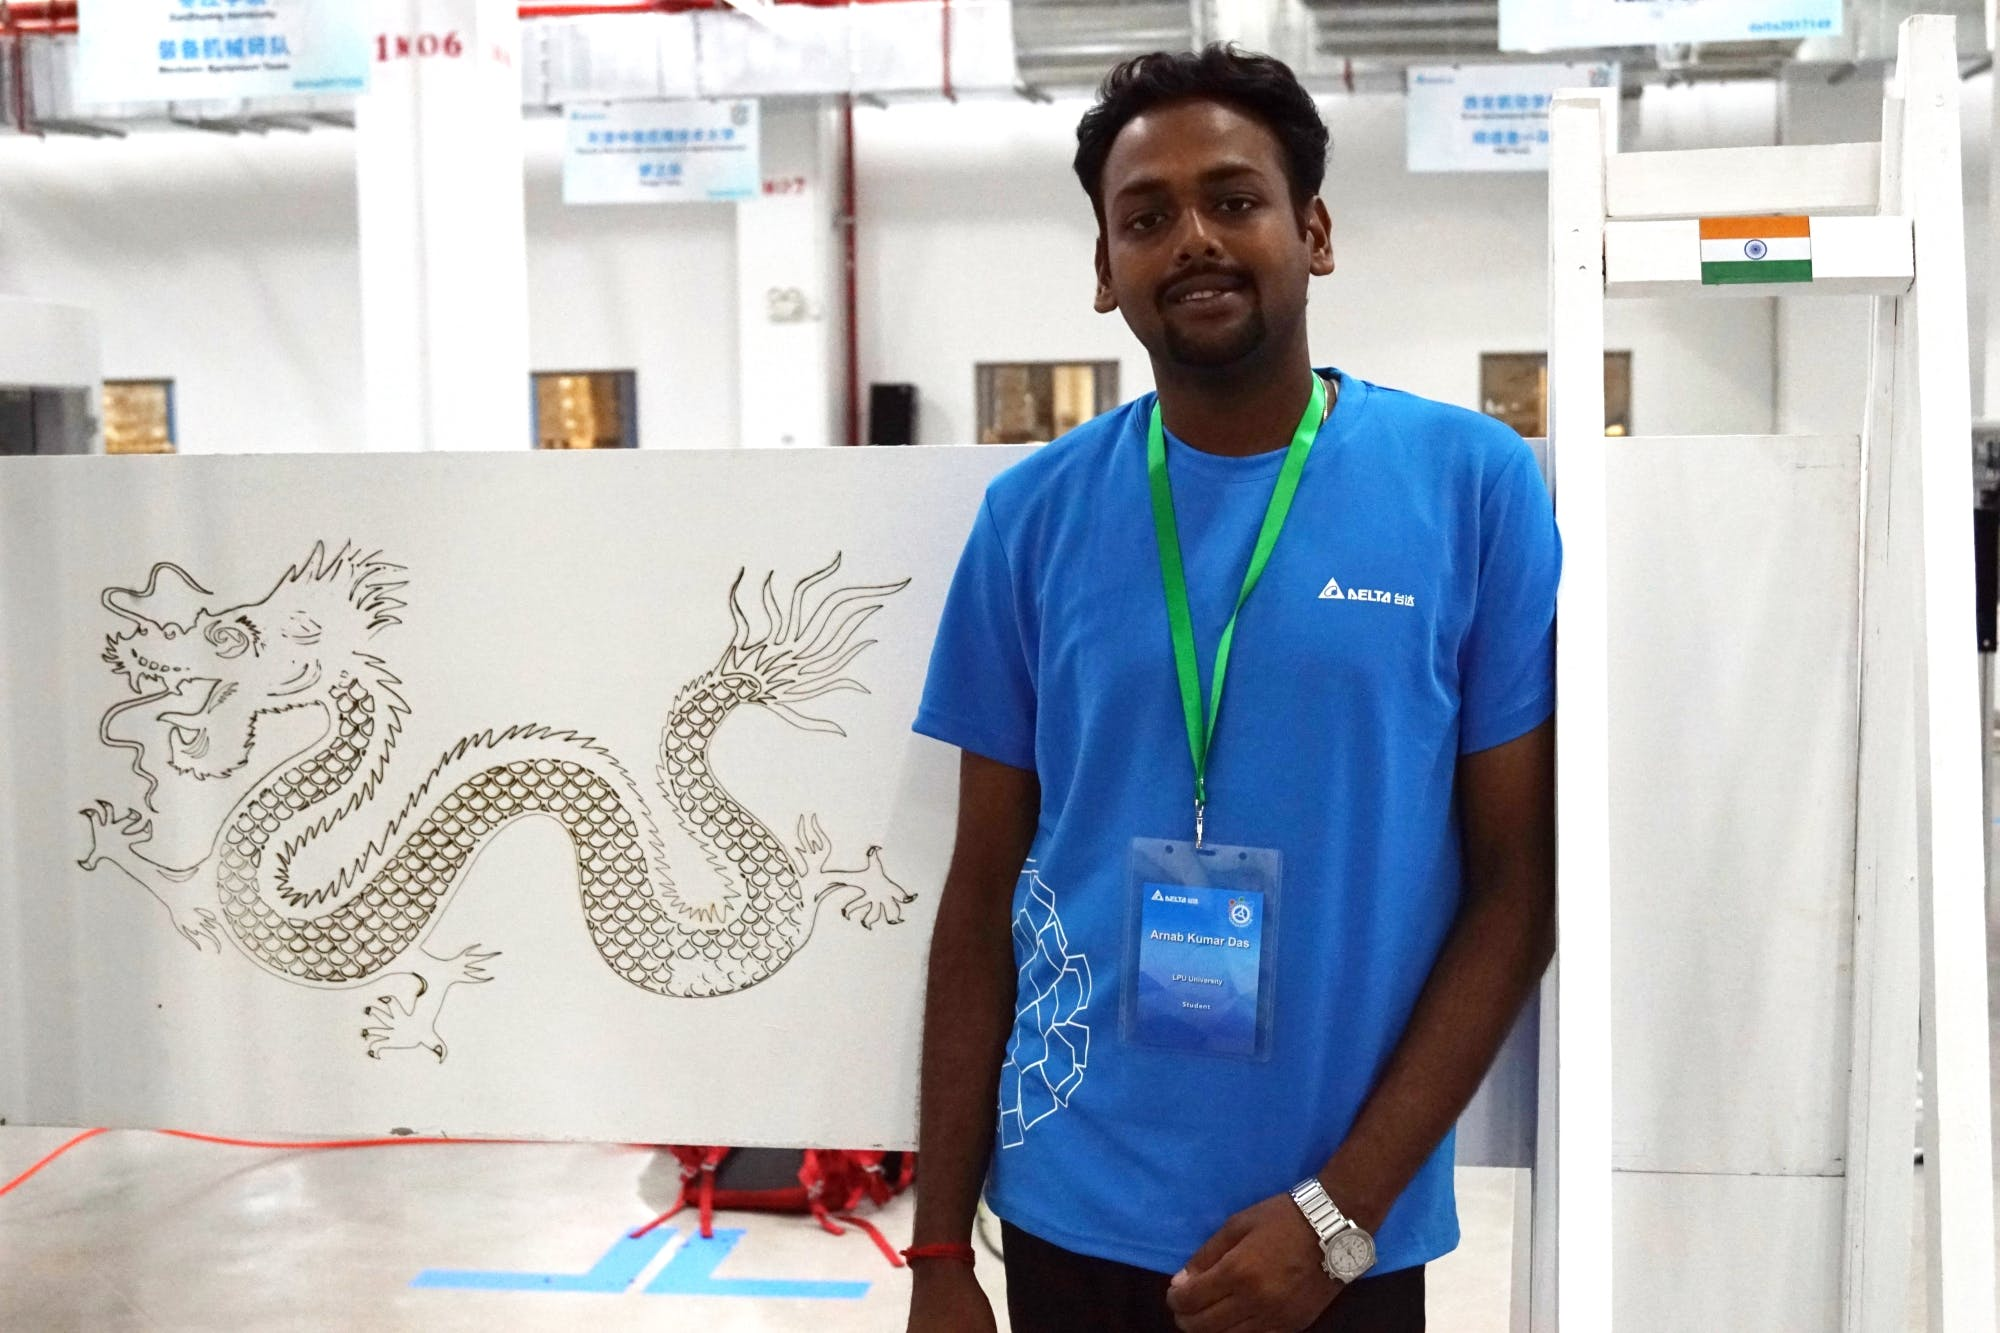 Me with the Laser Engraved Dragon